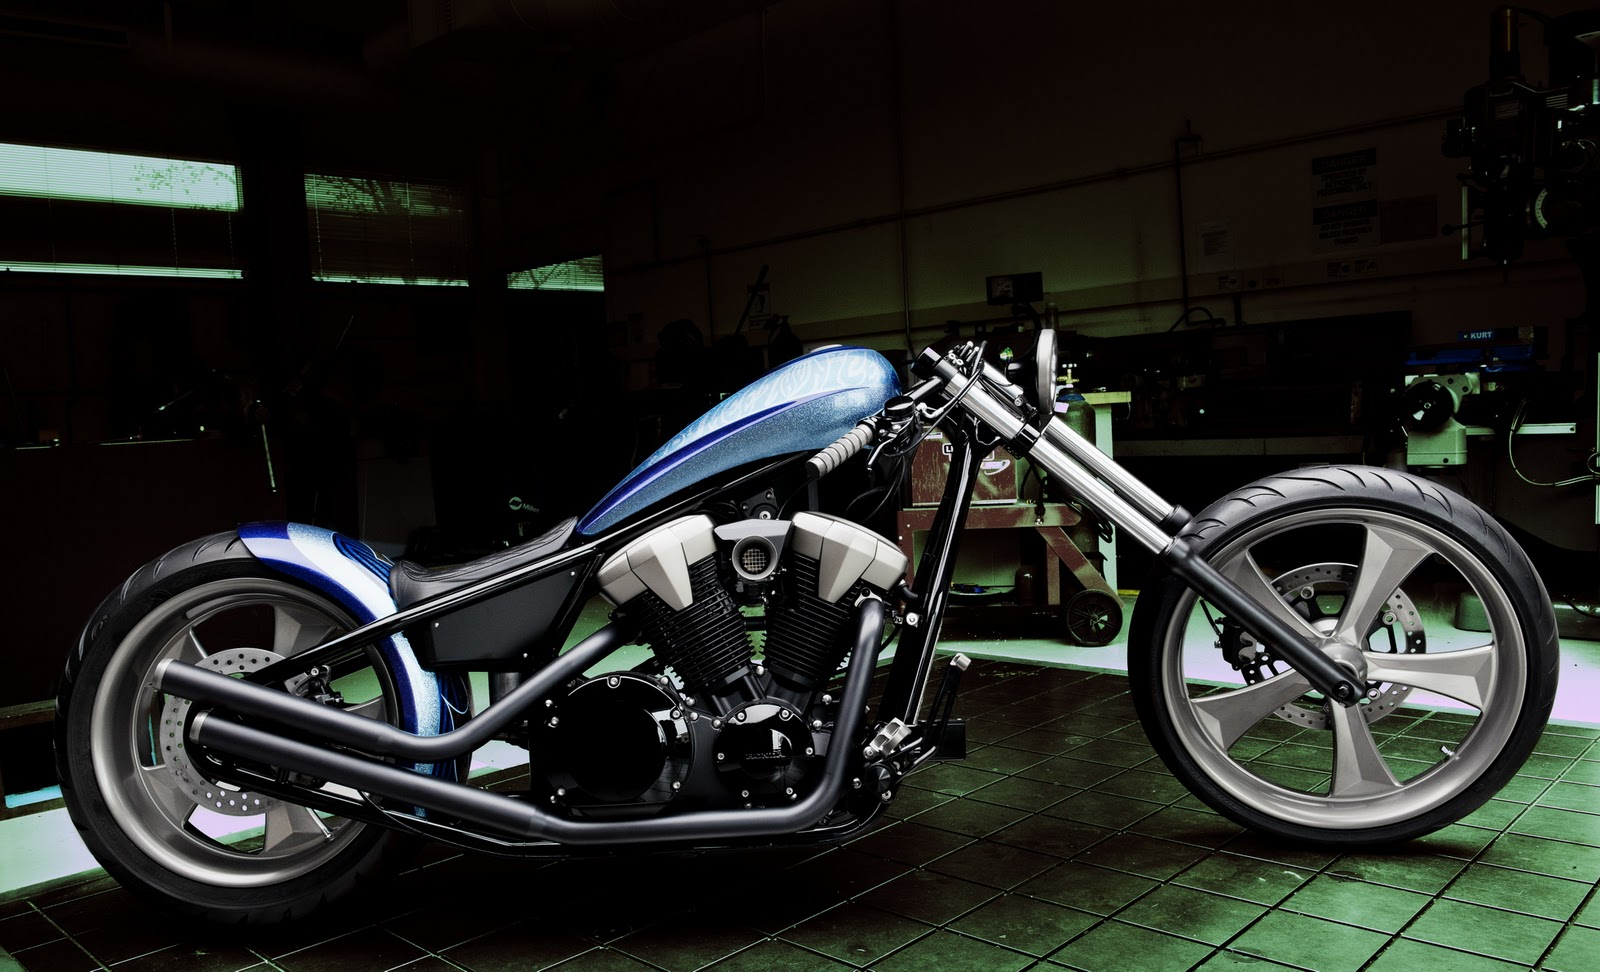 Heavy Bikes And Cars Wallpapers Free Download Kawagoe Kreature Krew Some Nice Bobbers